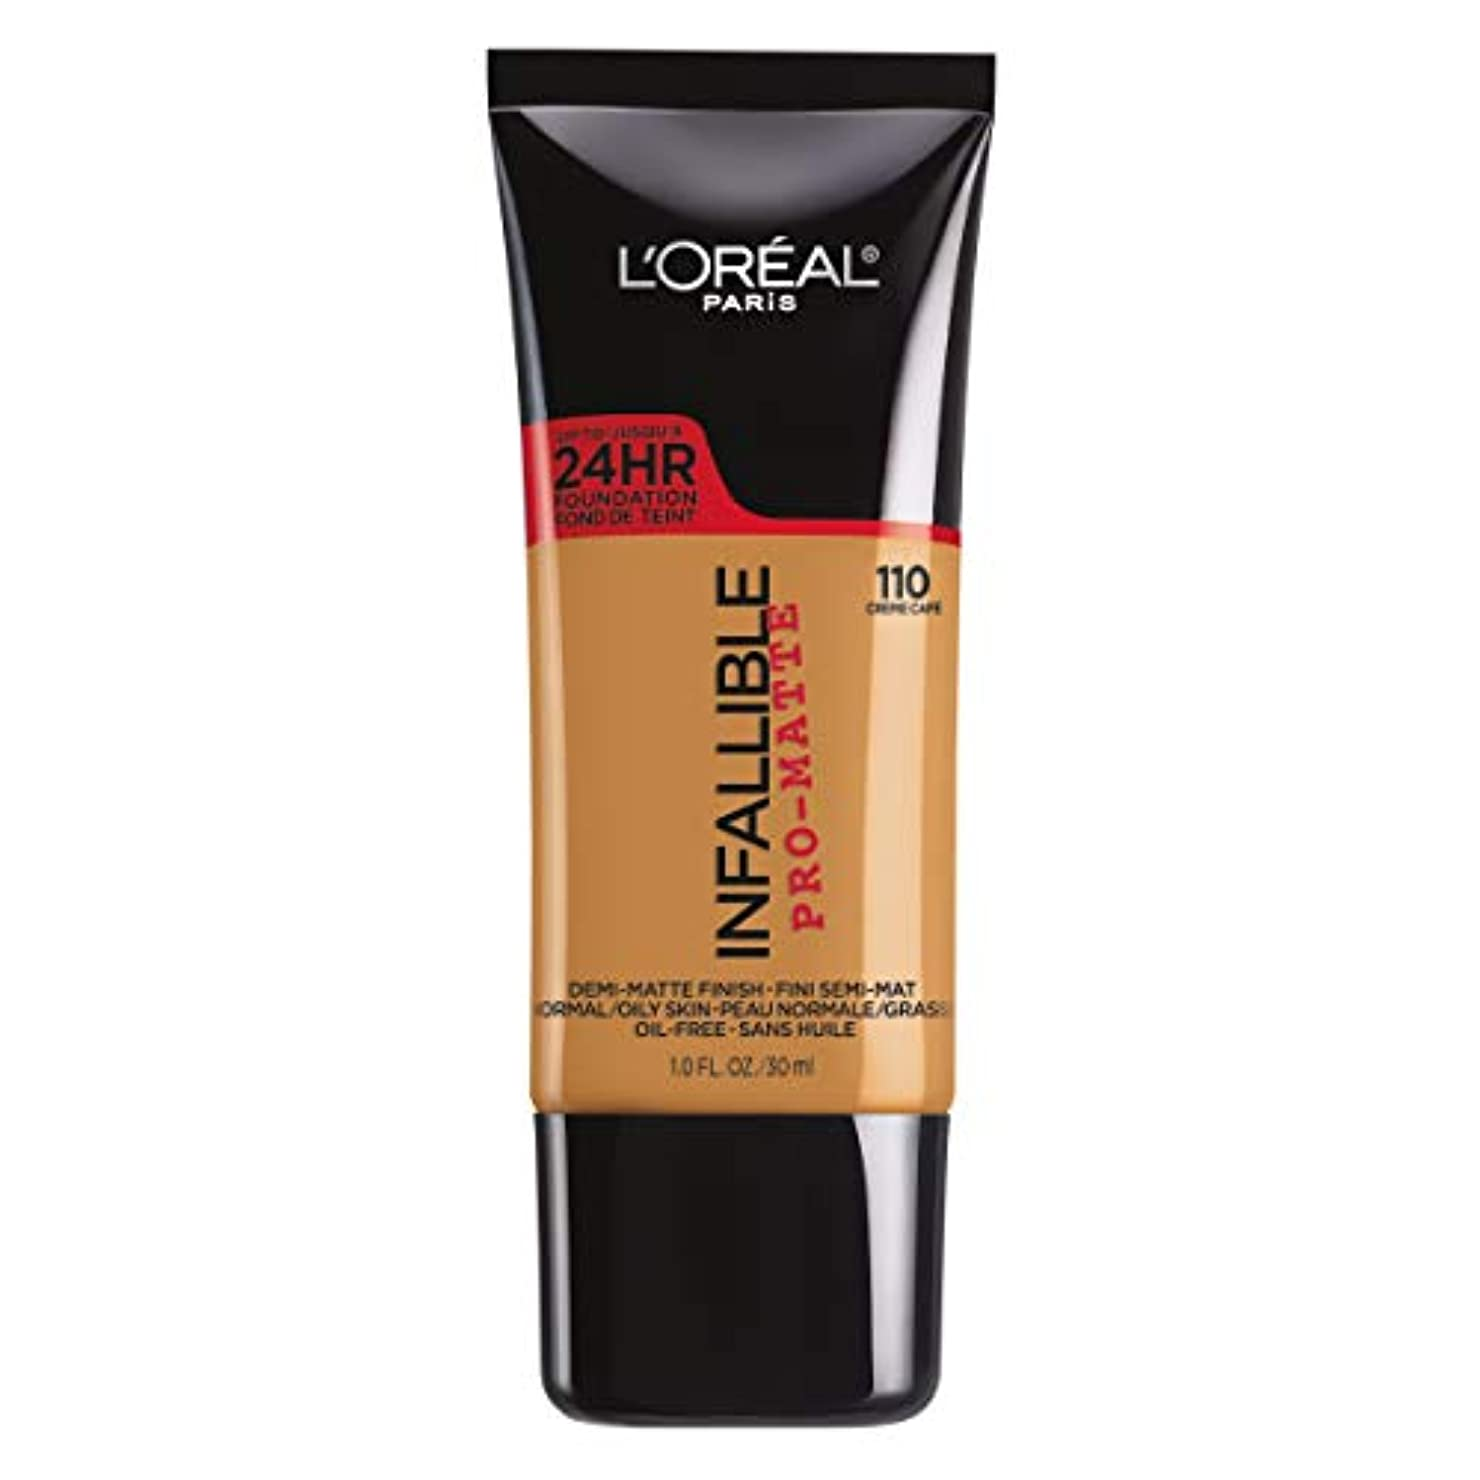 クランプ動作知らせるL'Oreal Paris Infallible Pro-Matte Foundation Makeup, 110 Crème Café, 1 fl. oz[並行輸入品]